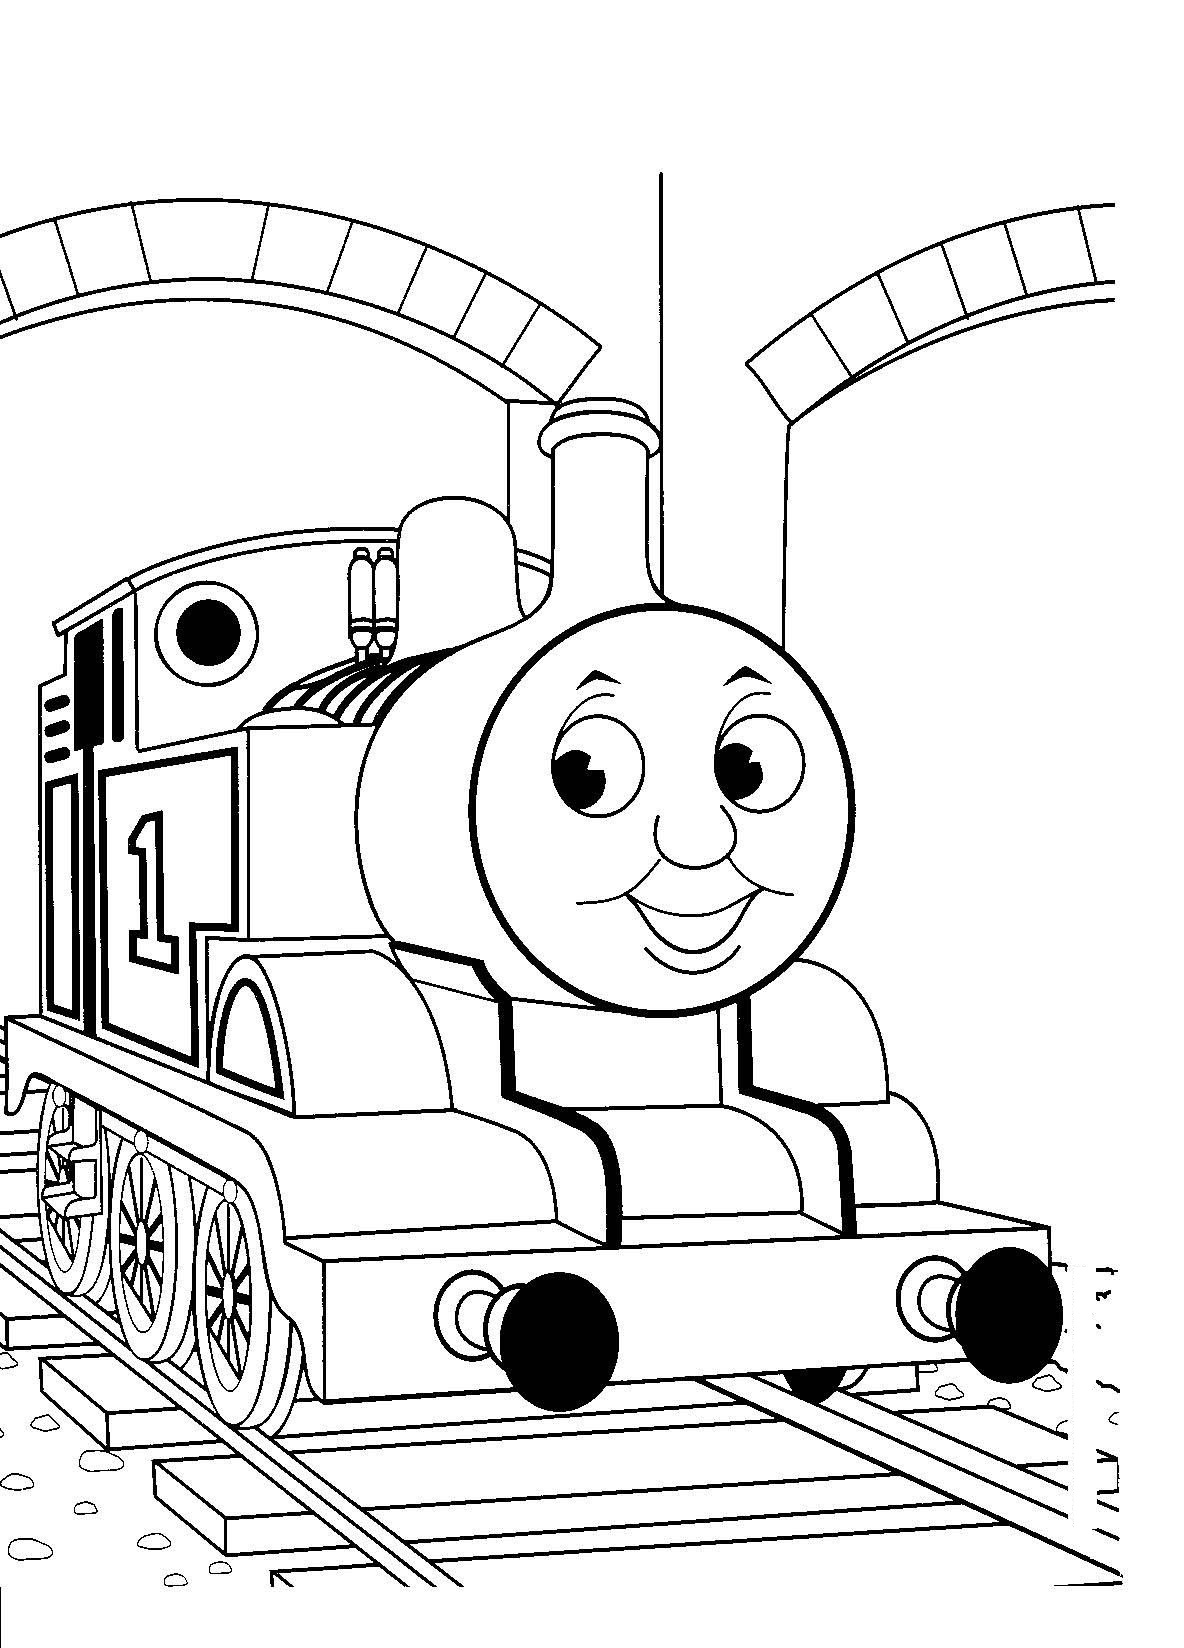 Coloring pages trains for kids - Free Printable Thomas The Train Coloring Pages